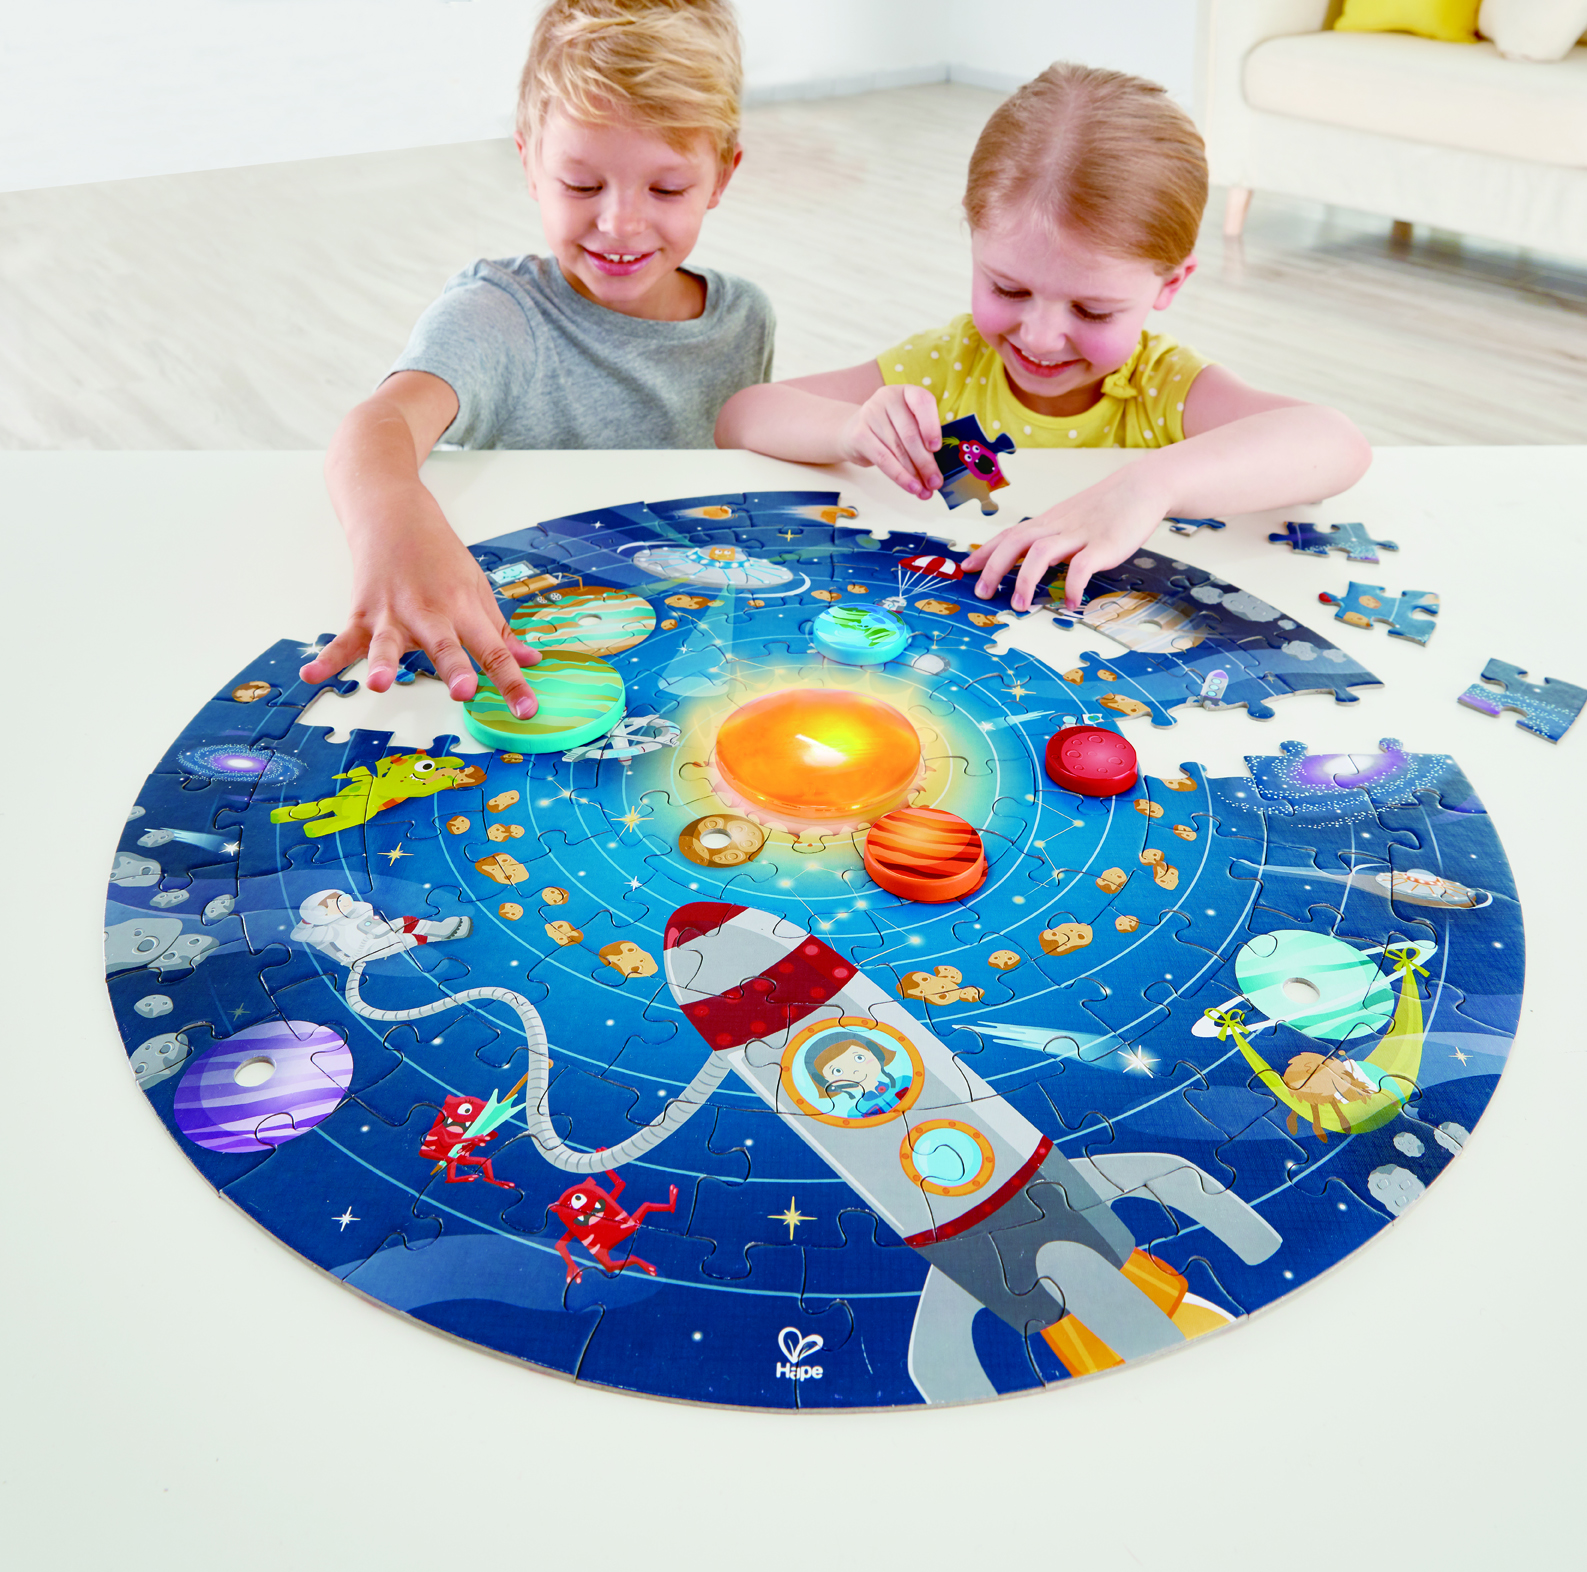 E1625 Solar System Puzzle with child 1